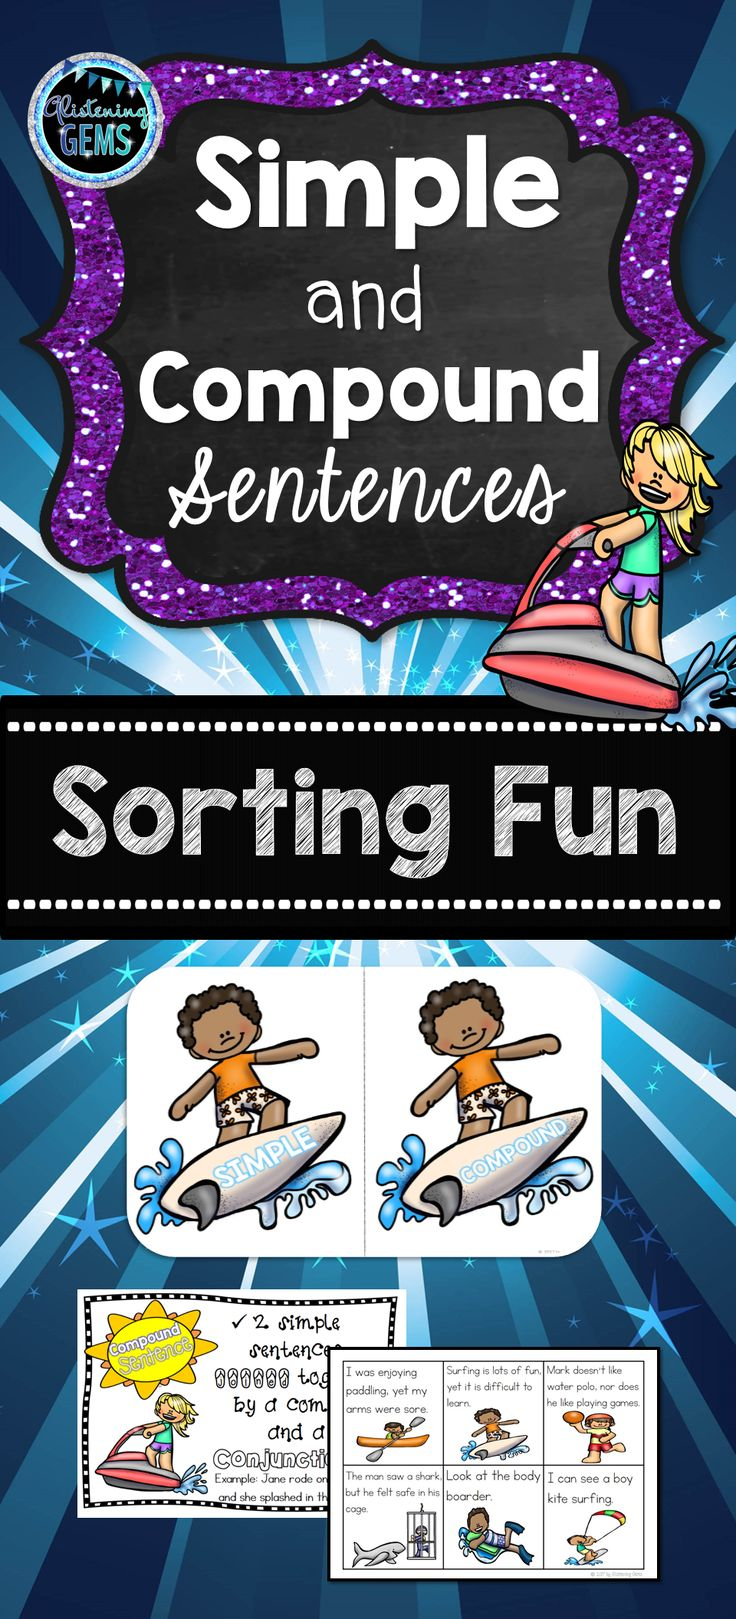 Simple and Compound Sentences Sort Summer Theme - K-3. This kit is available in color or b/w. It includes: sorting headers, sorting cards, teacher instructions, answer sheets, student response sheet and anchor charts.